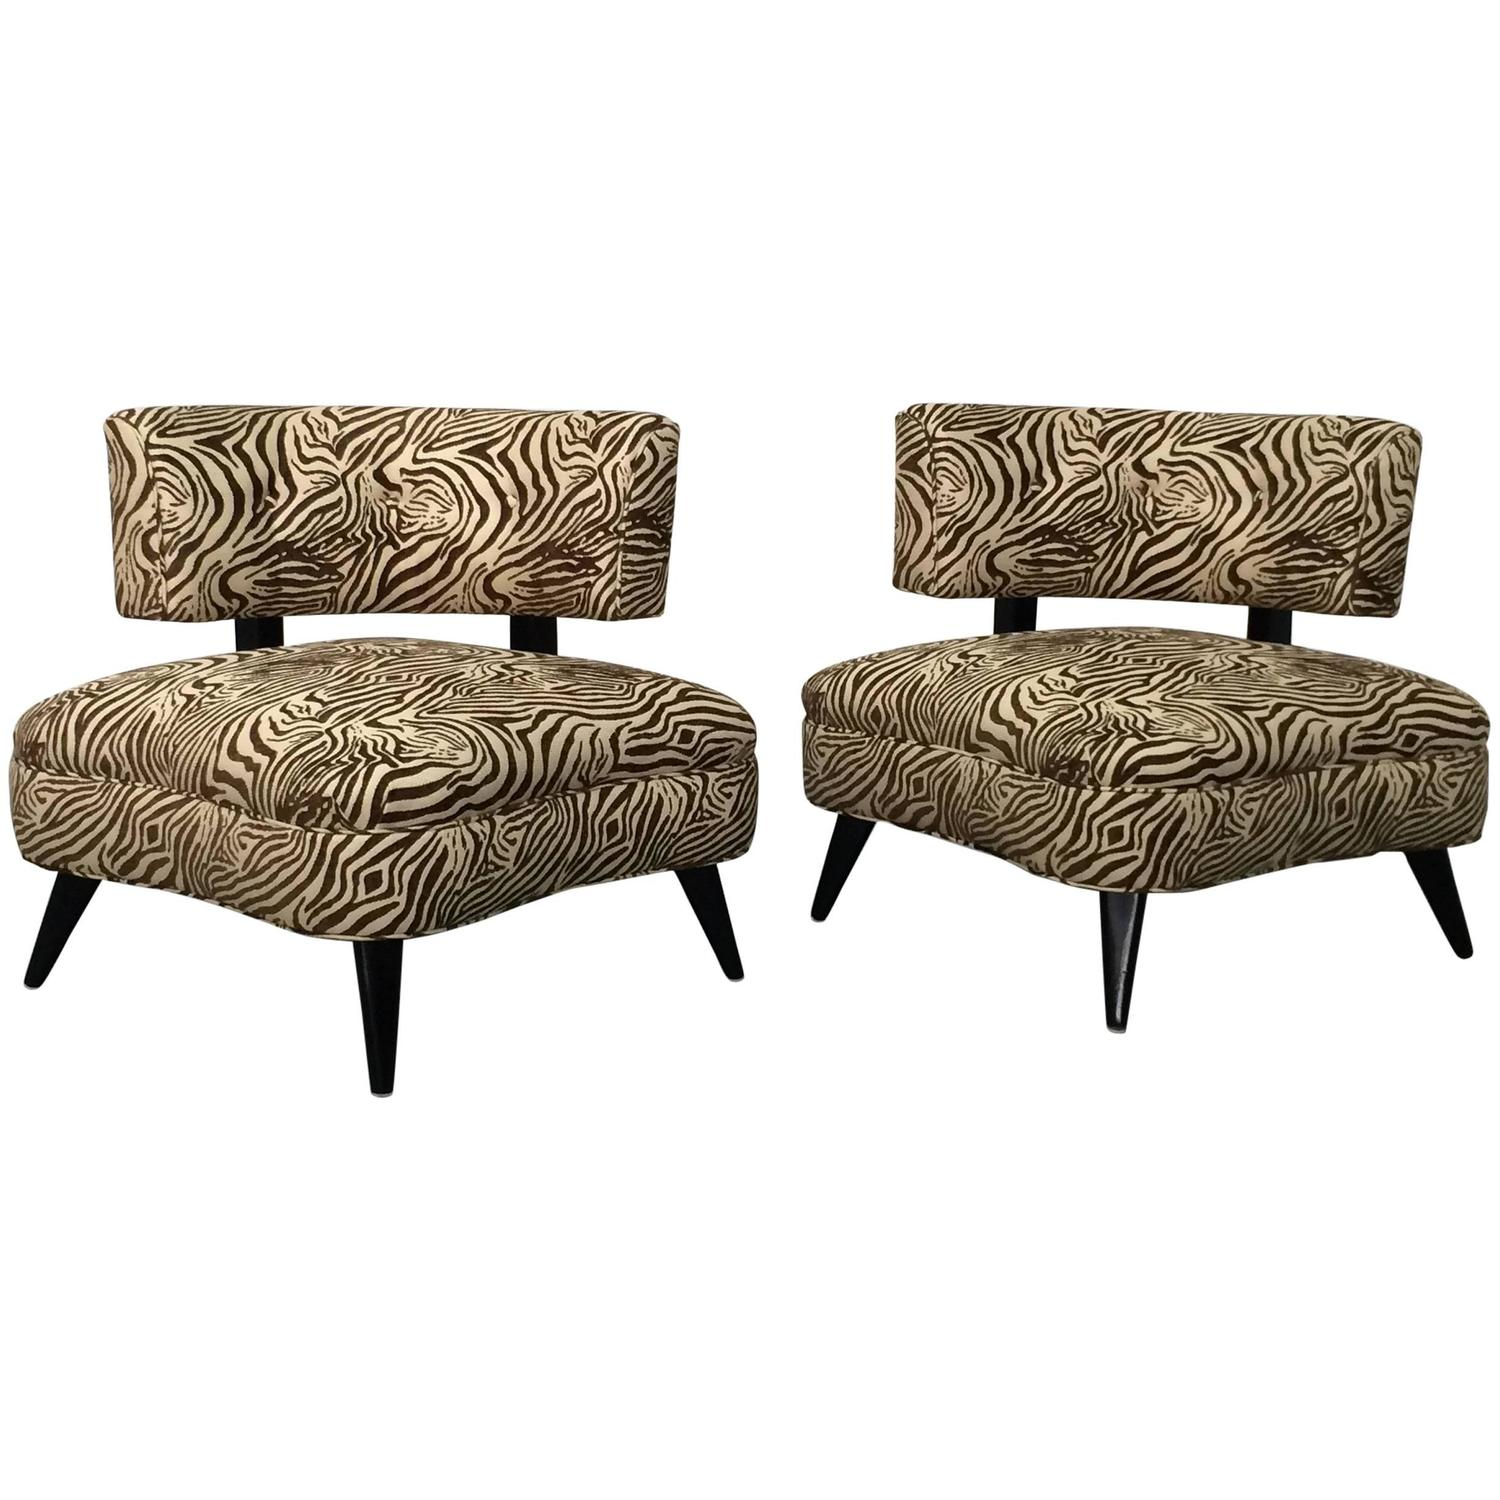 zebra print chairs for sale navy accent chair pair of 1950s retro in by furnish inc